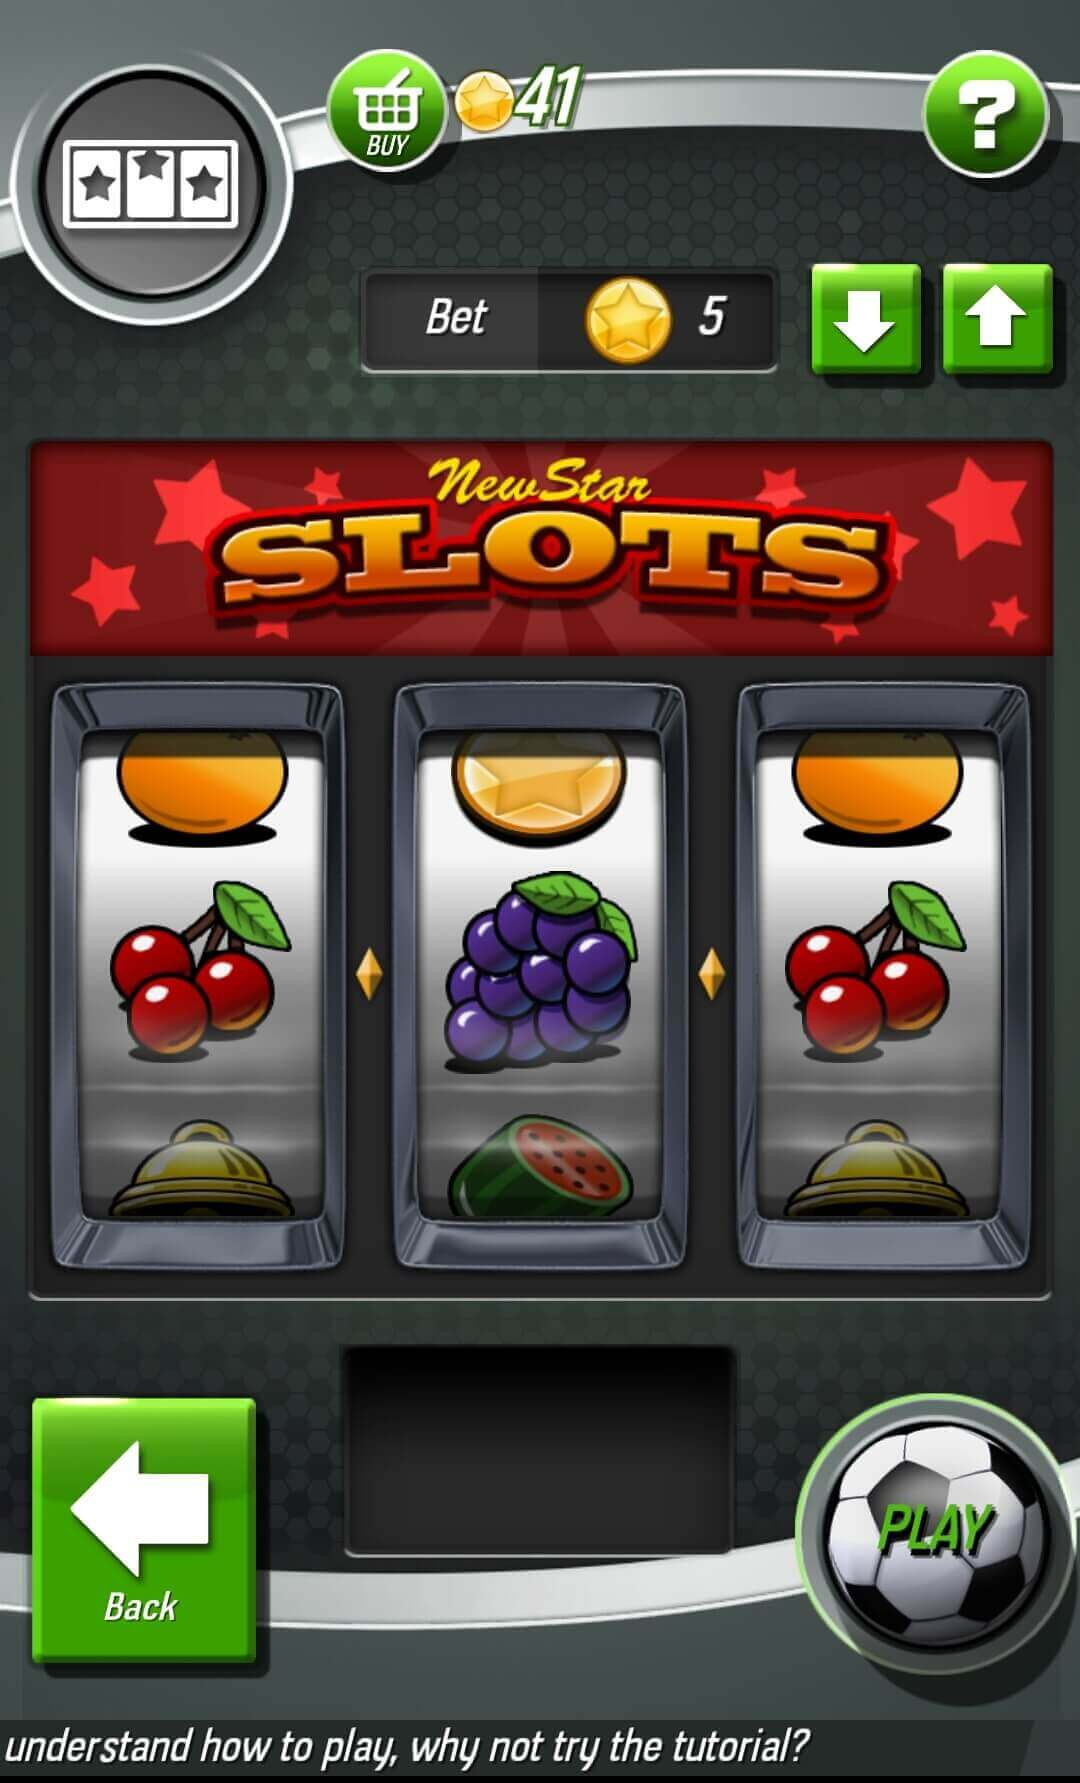 New Star Soccer Slots